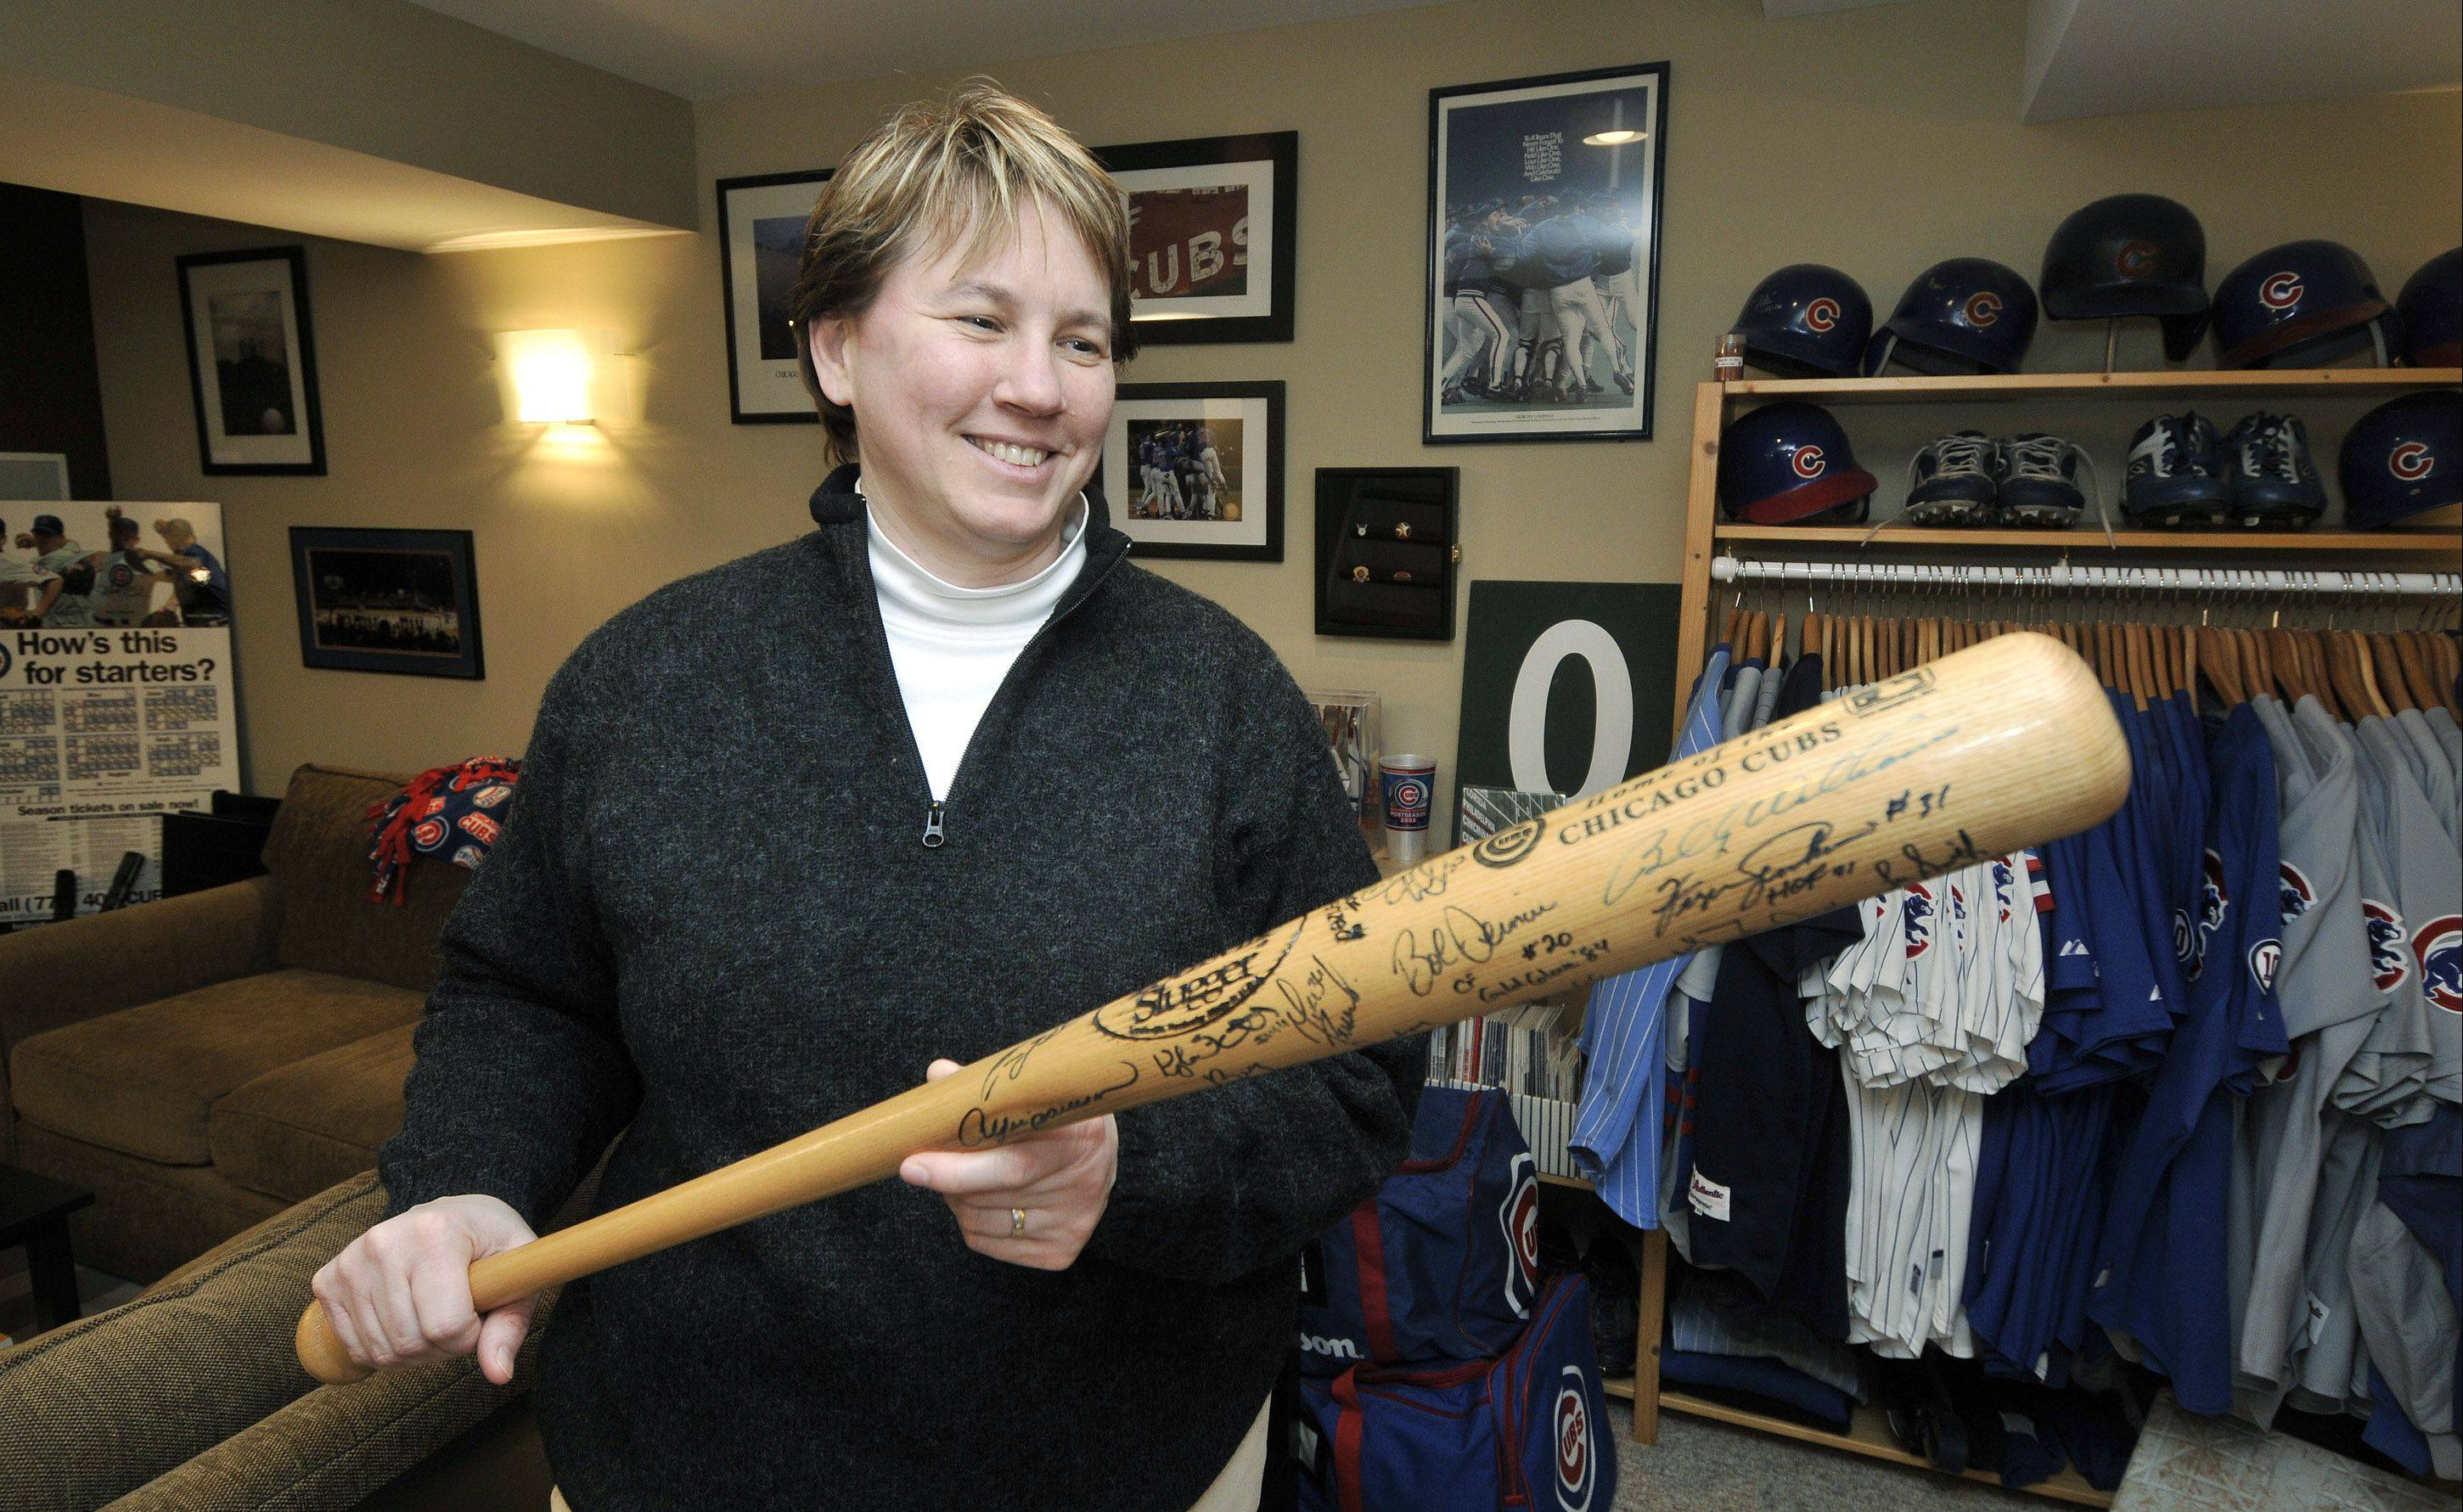 Starting with a bat featuring the autograph of legend Billy Williams, fan and collector Kelley Neal soon filled the bat with so many other signatures from her favorite Cubs players that she needed to buy a second bat.